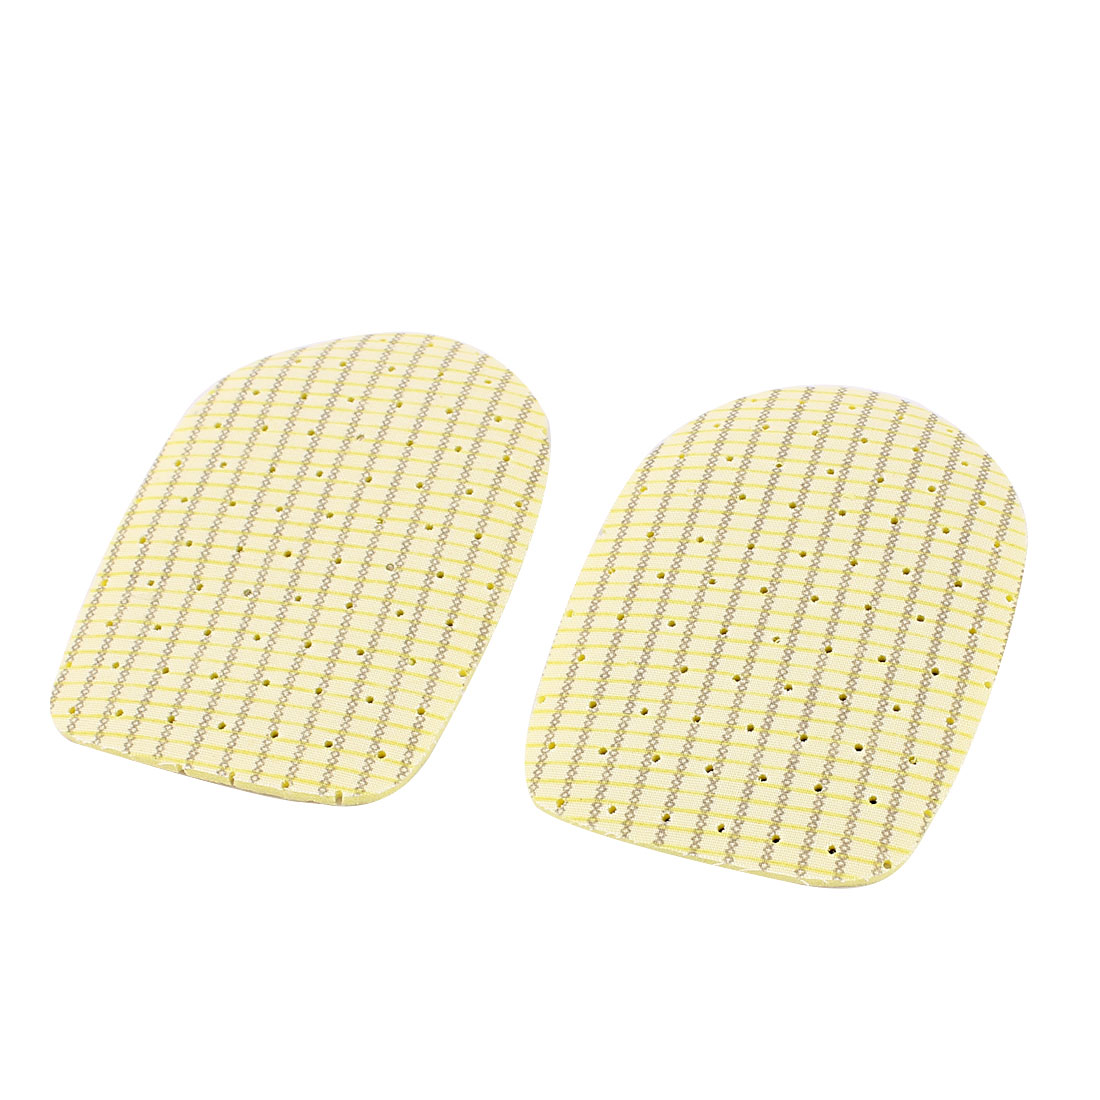 Lady Yellow Plaids Pattern Anti-Slip Feet Care Foot Cushion Protector Back Insoles Pads